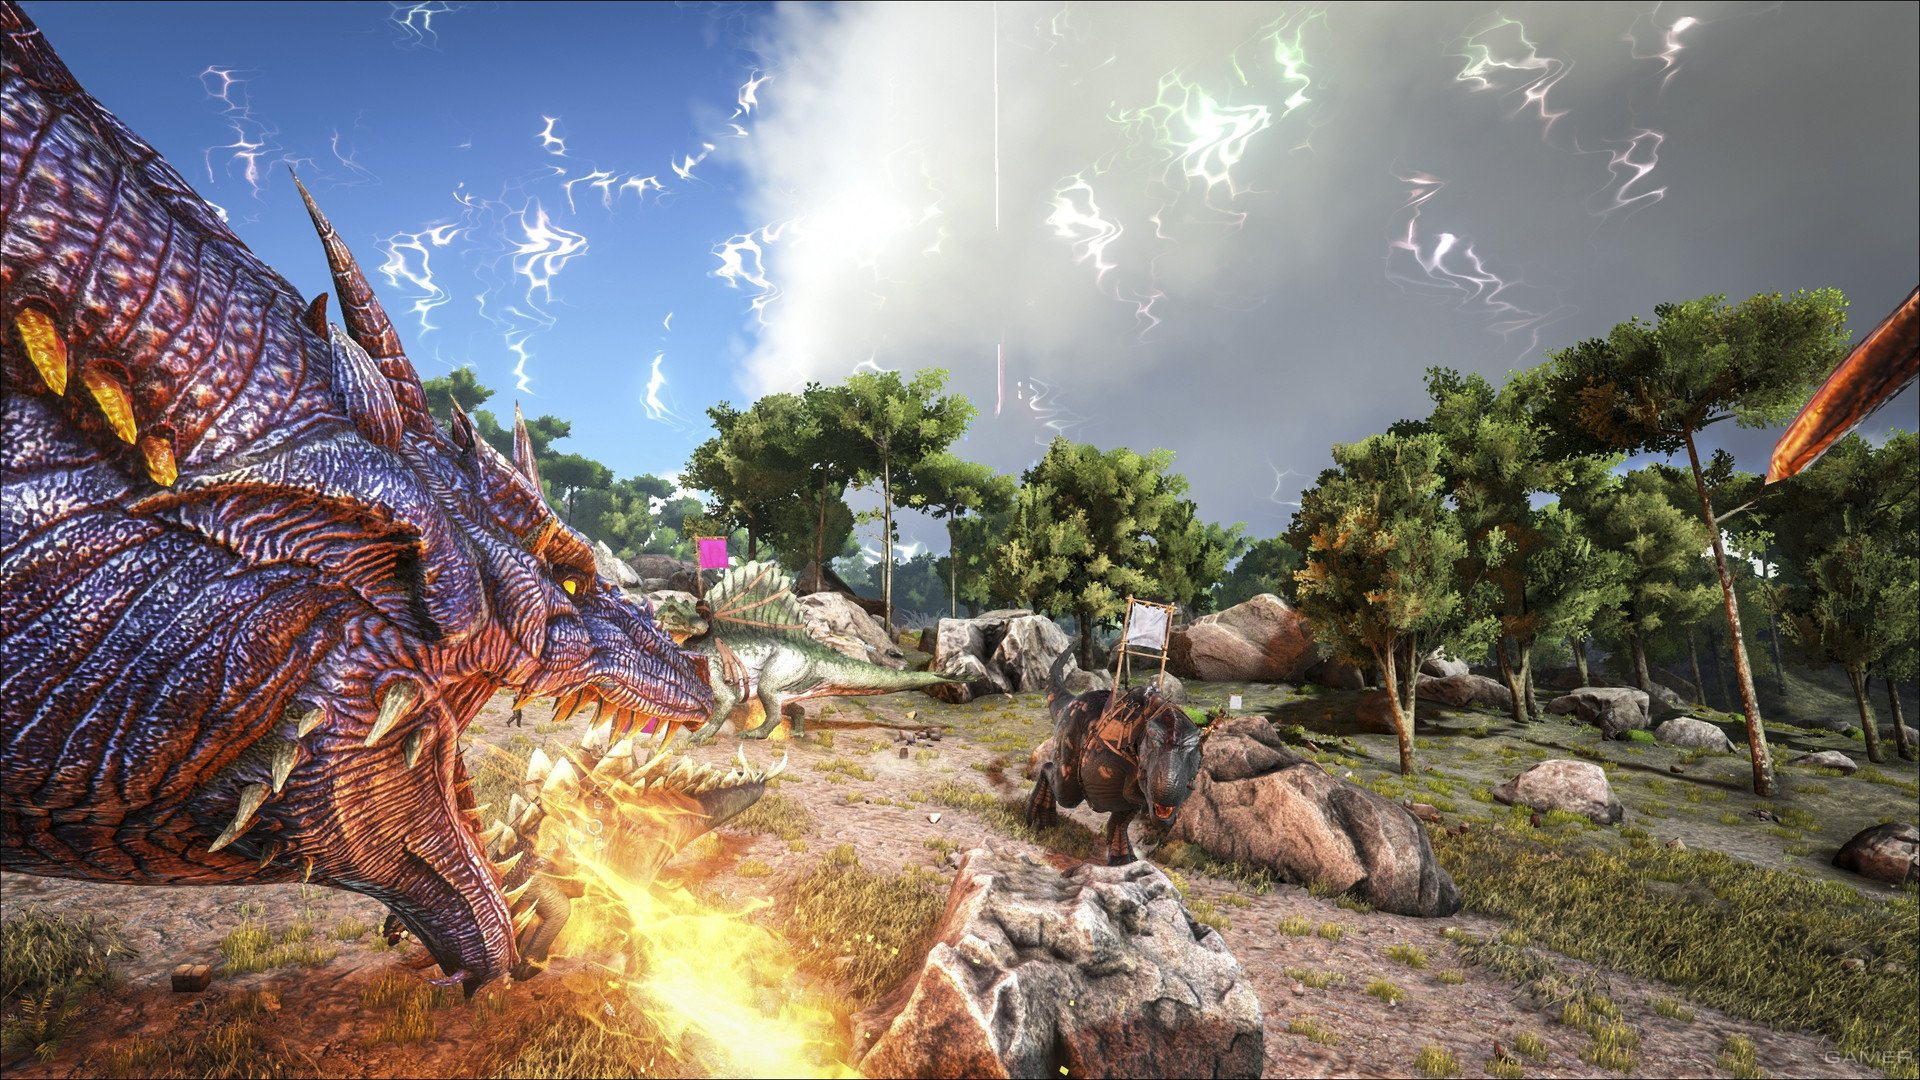 ARK: Survival of the Fittest (2017 video game)